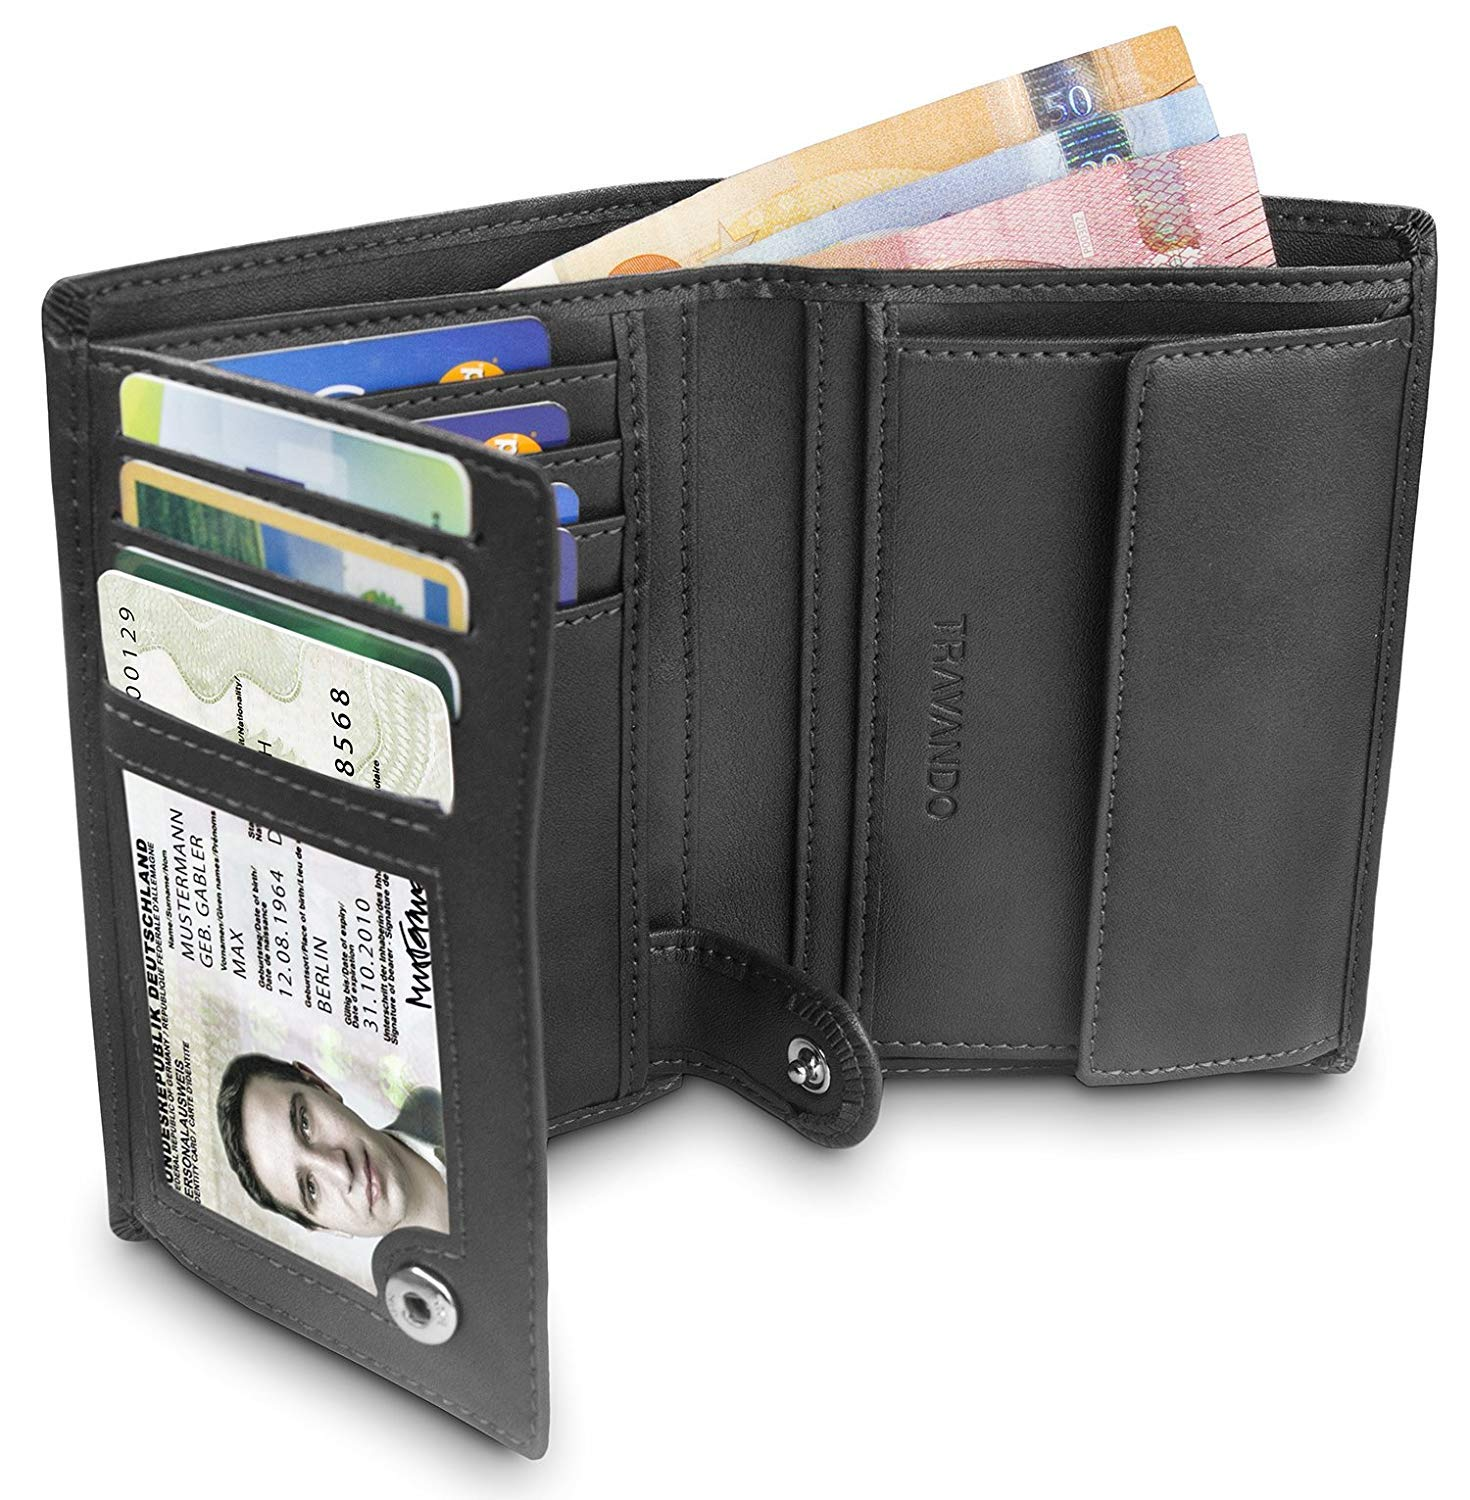 "9a011fb916f1 TRAVANDO ® Mens Wallet Black ""Dublin"" - RFID Blocking - Durable Bifold  Wallet -"